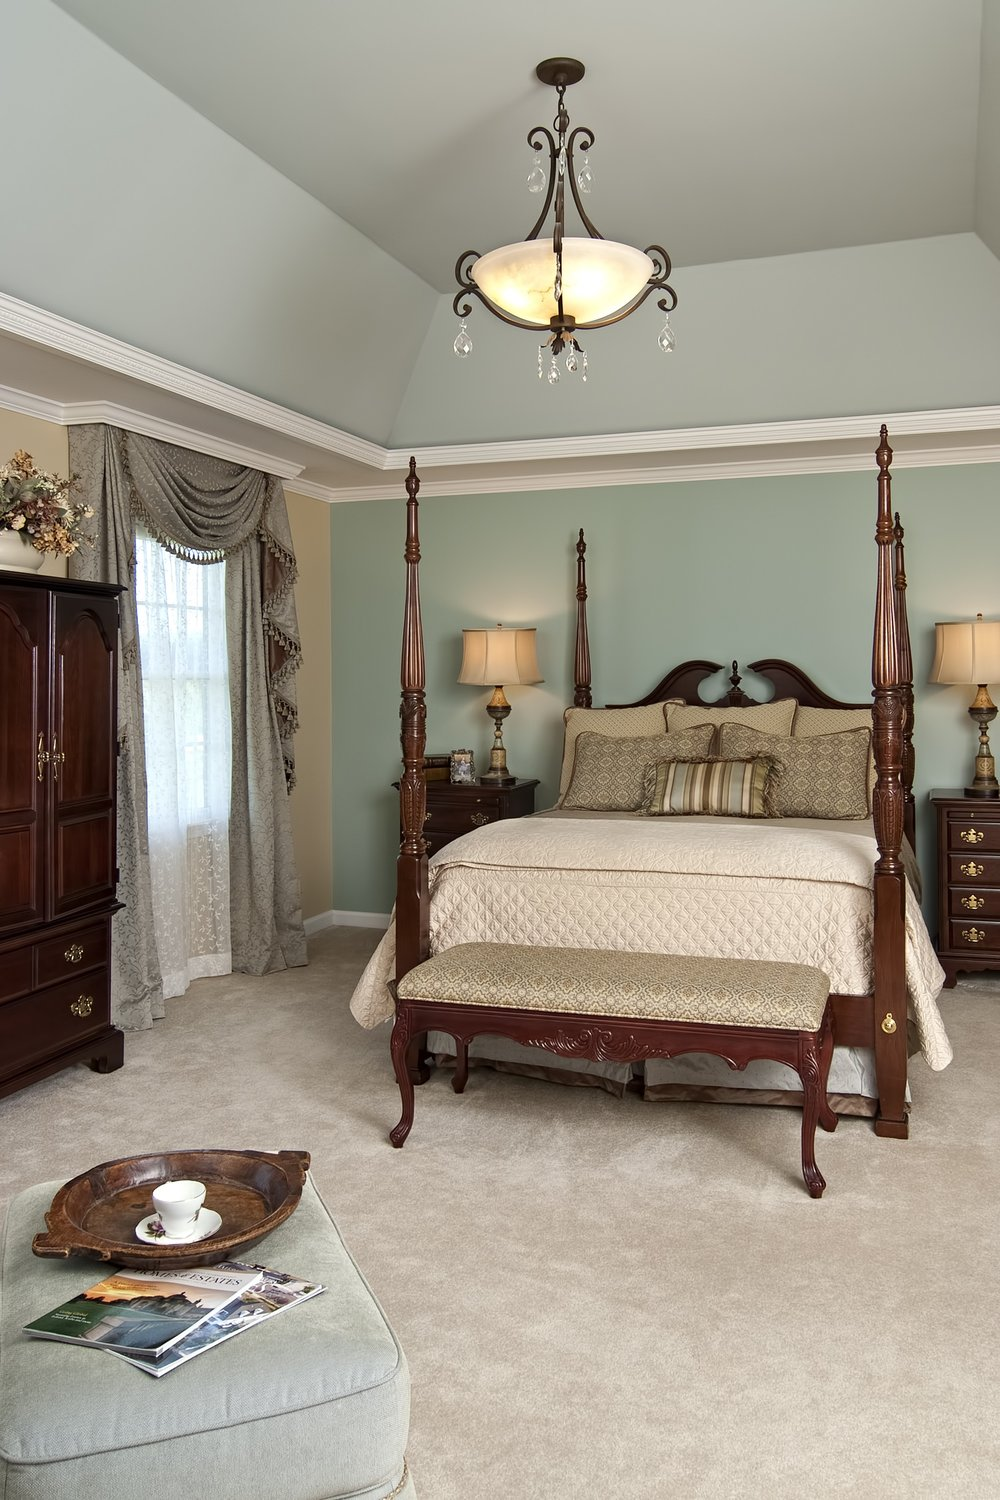 Bailiwick Interior Design - Molding Details - Tray Ceiling Master Bedroom - Accent Walls.jpg